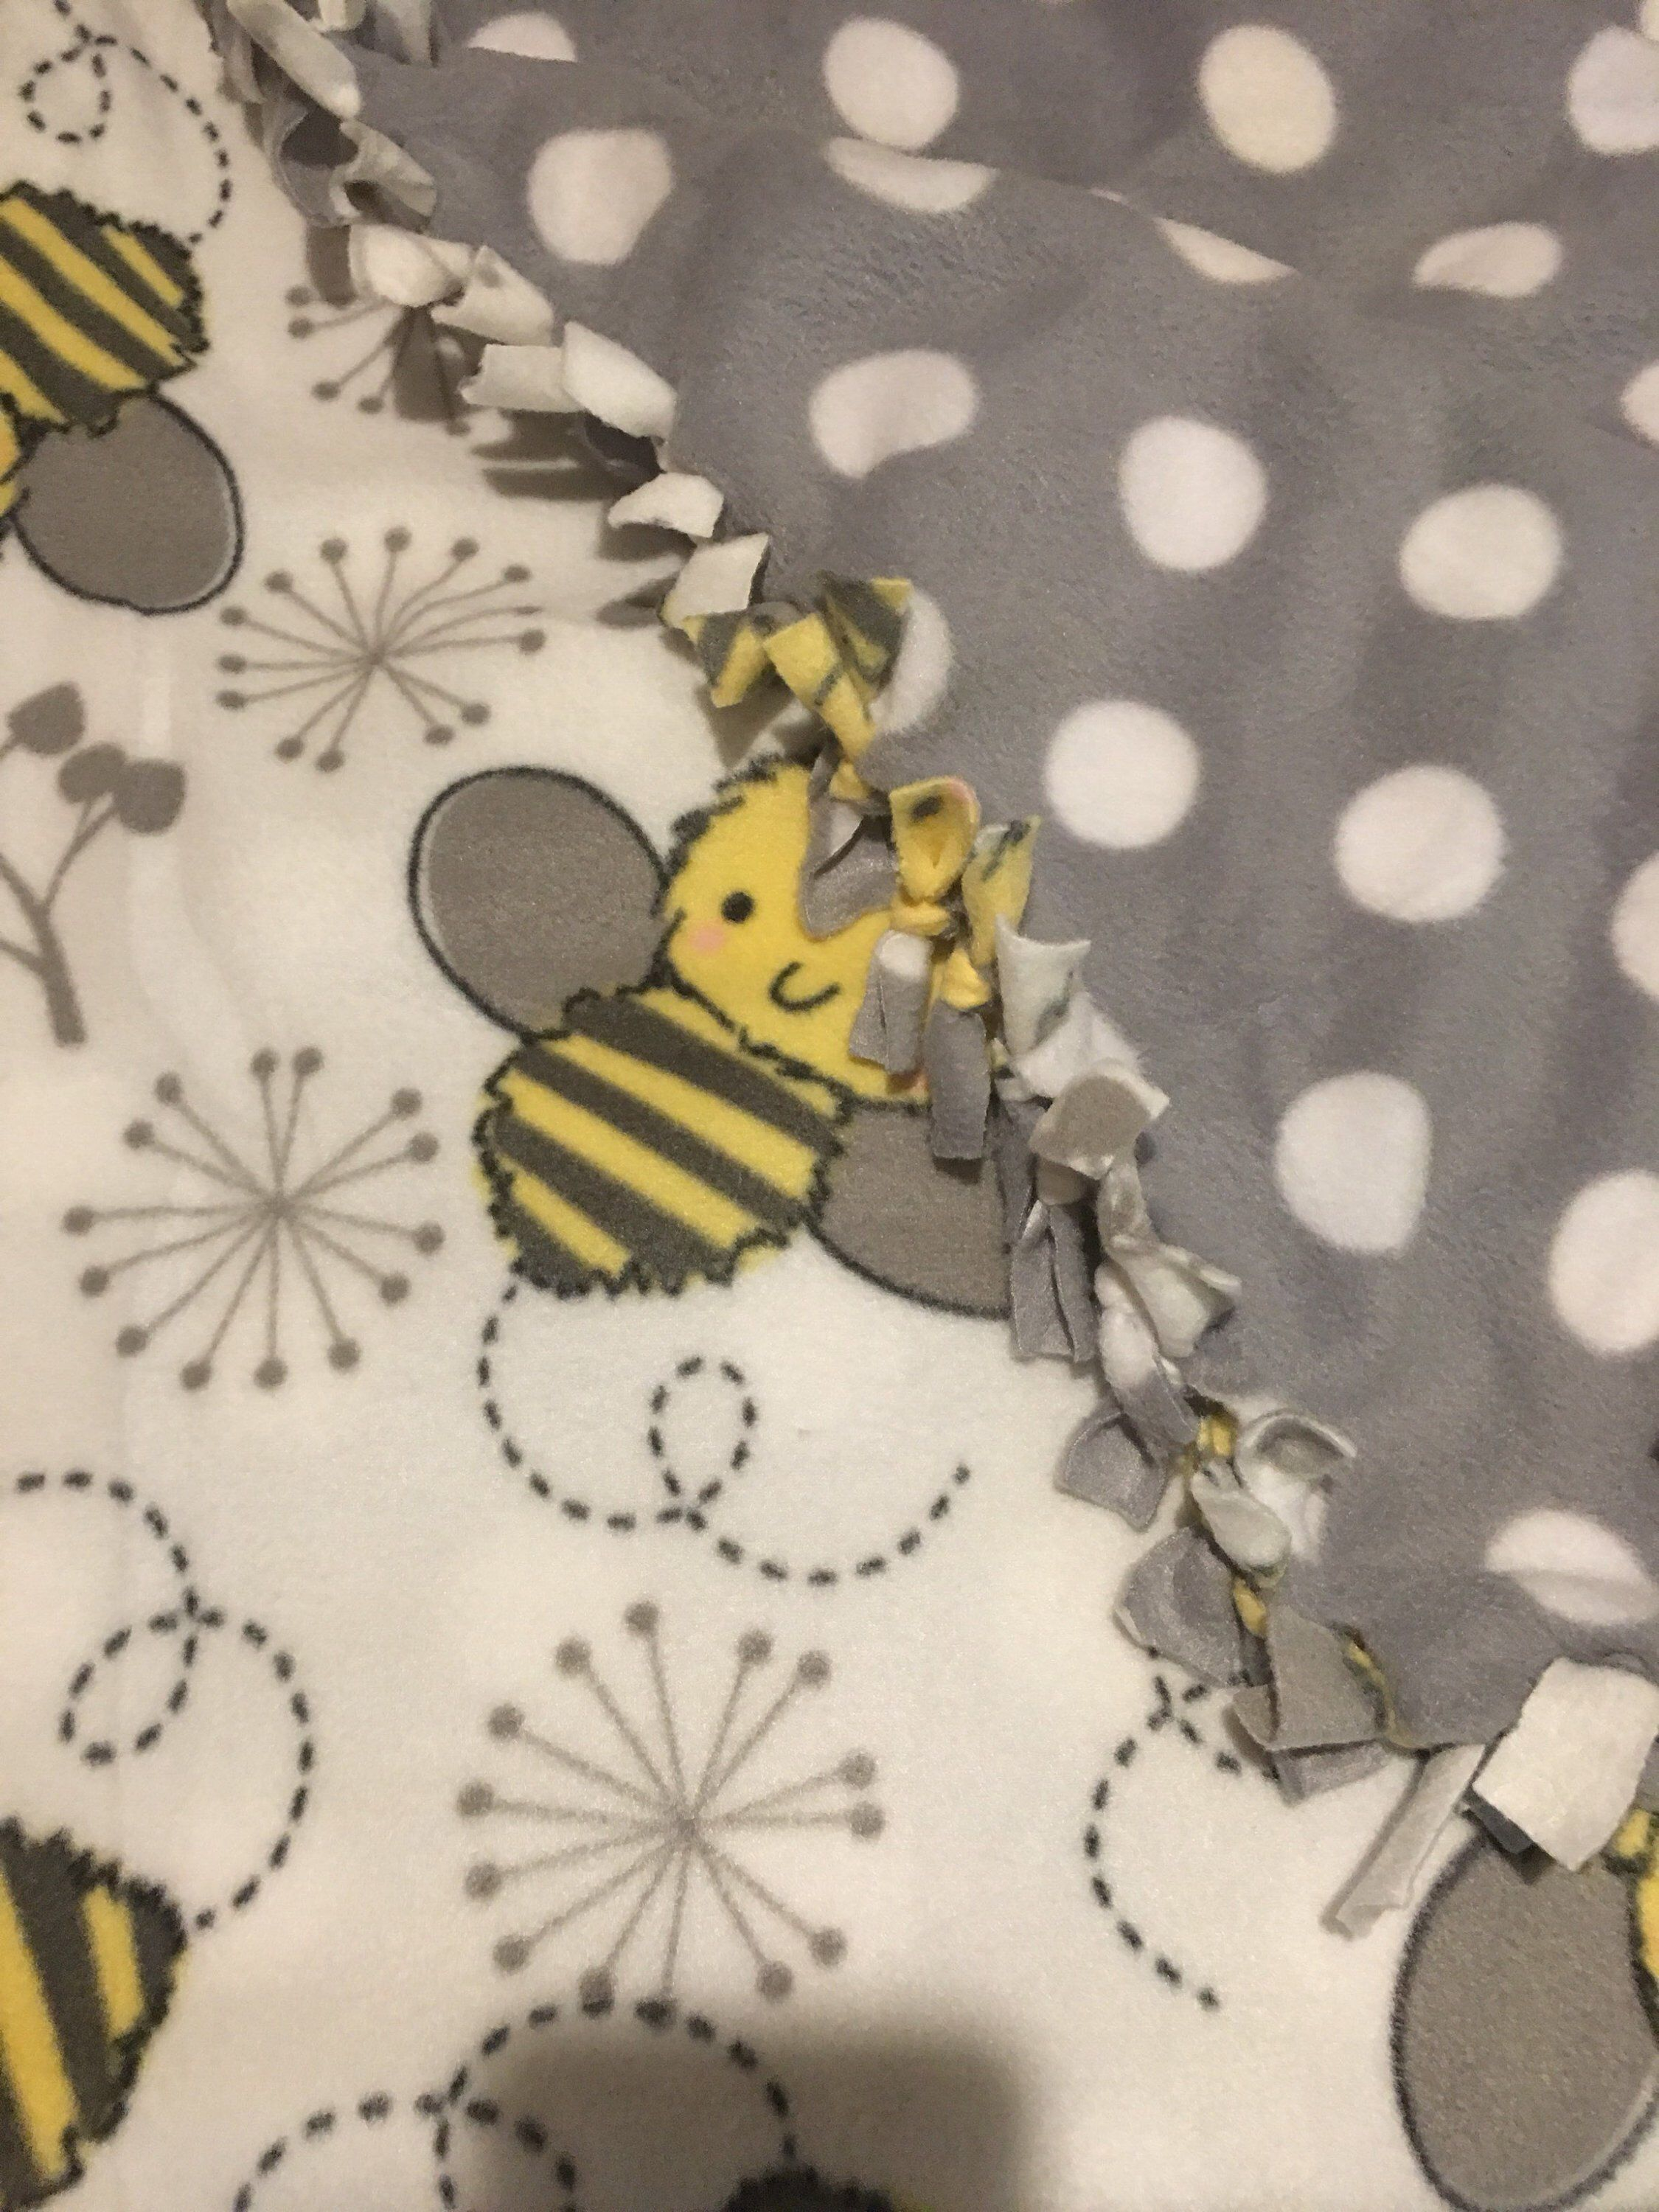 Grey Bumble Bee Soft Throw Manchester Bee Blanket Comfy /& Soft Ideal for Bedroom